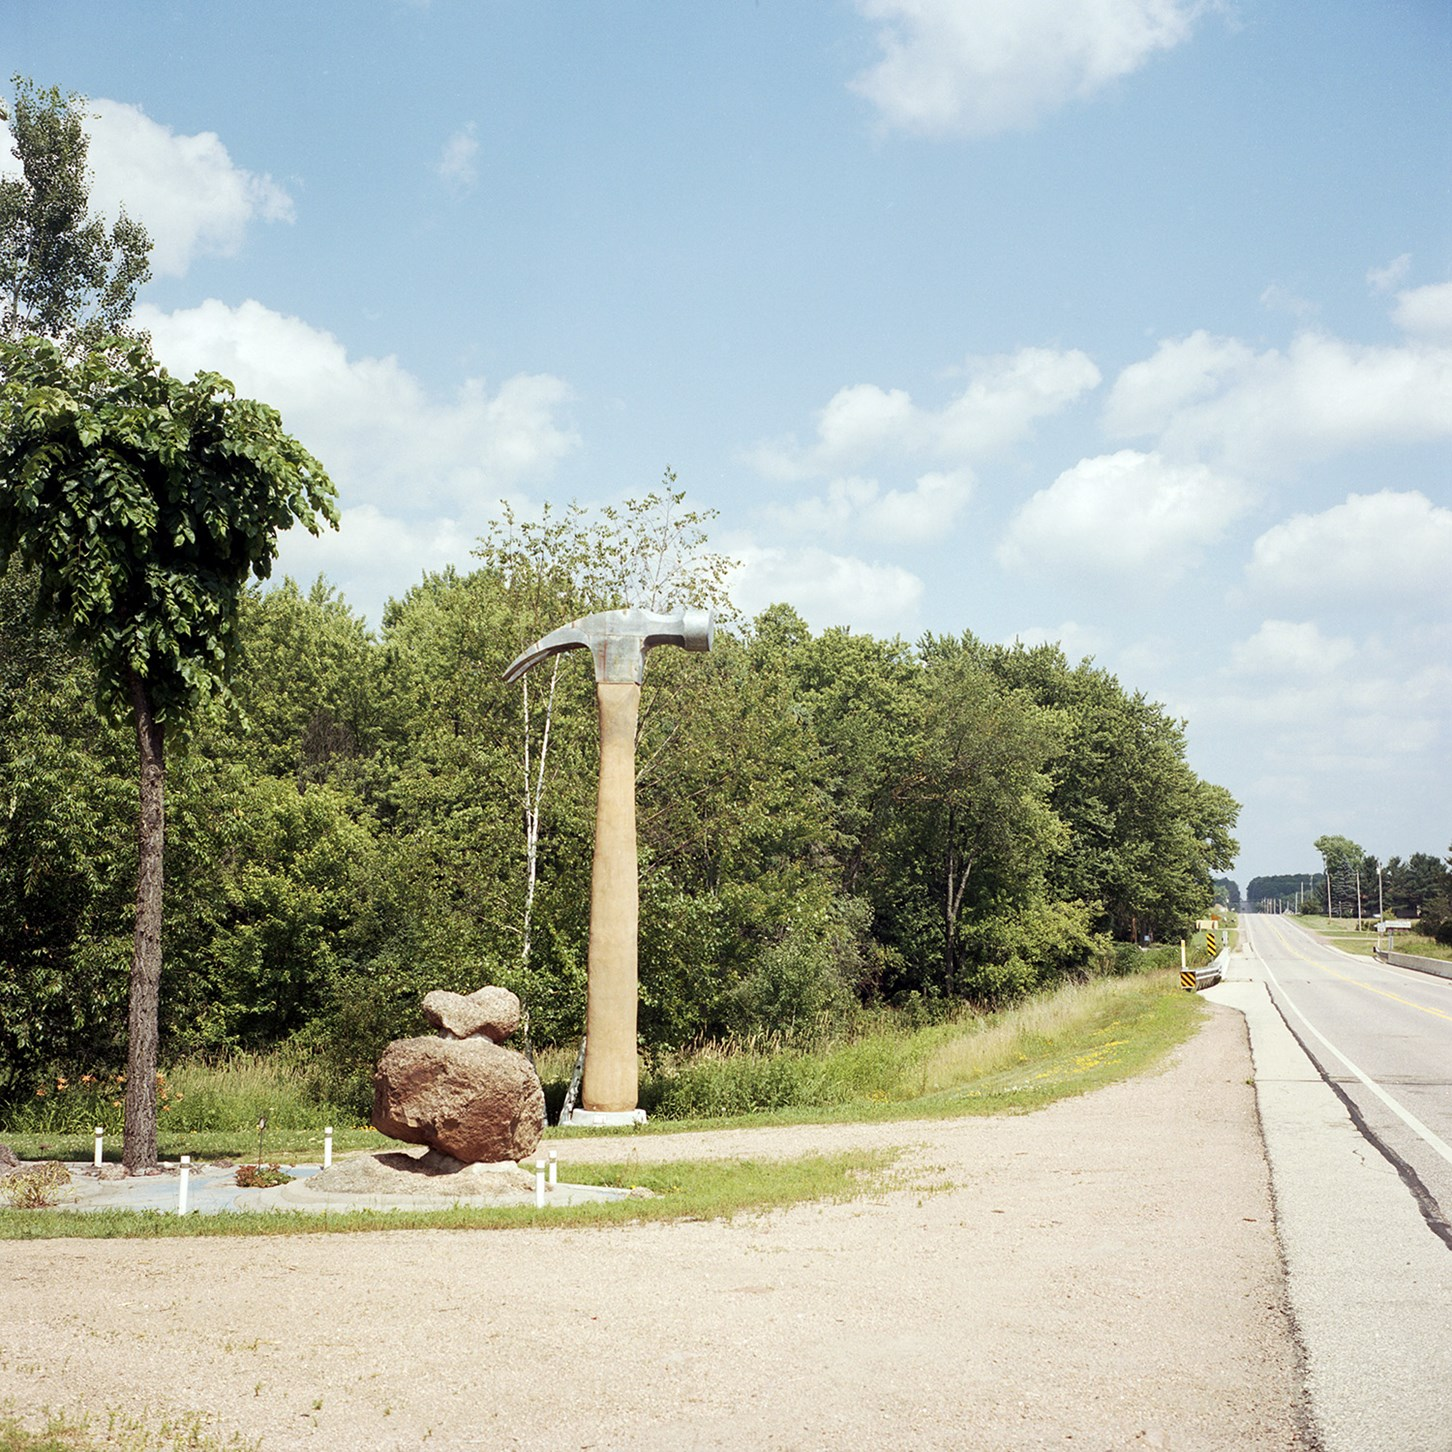 A Giant Hammer, Hogarty, Wisconsin, July 2015